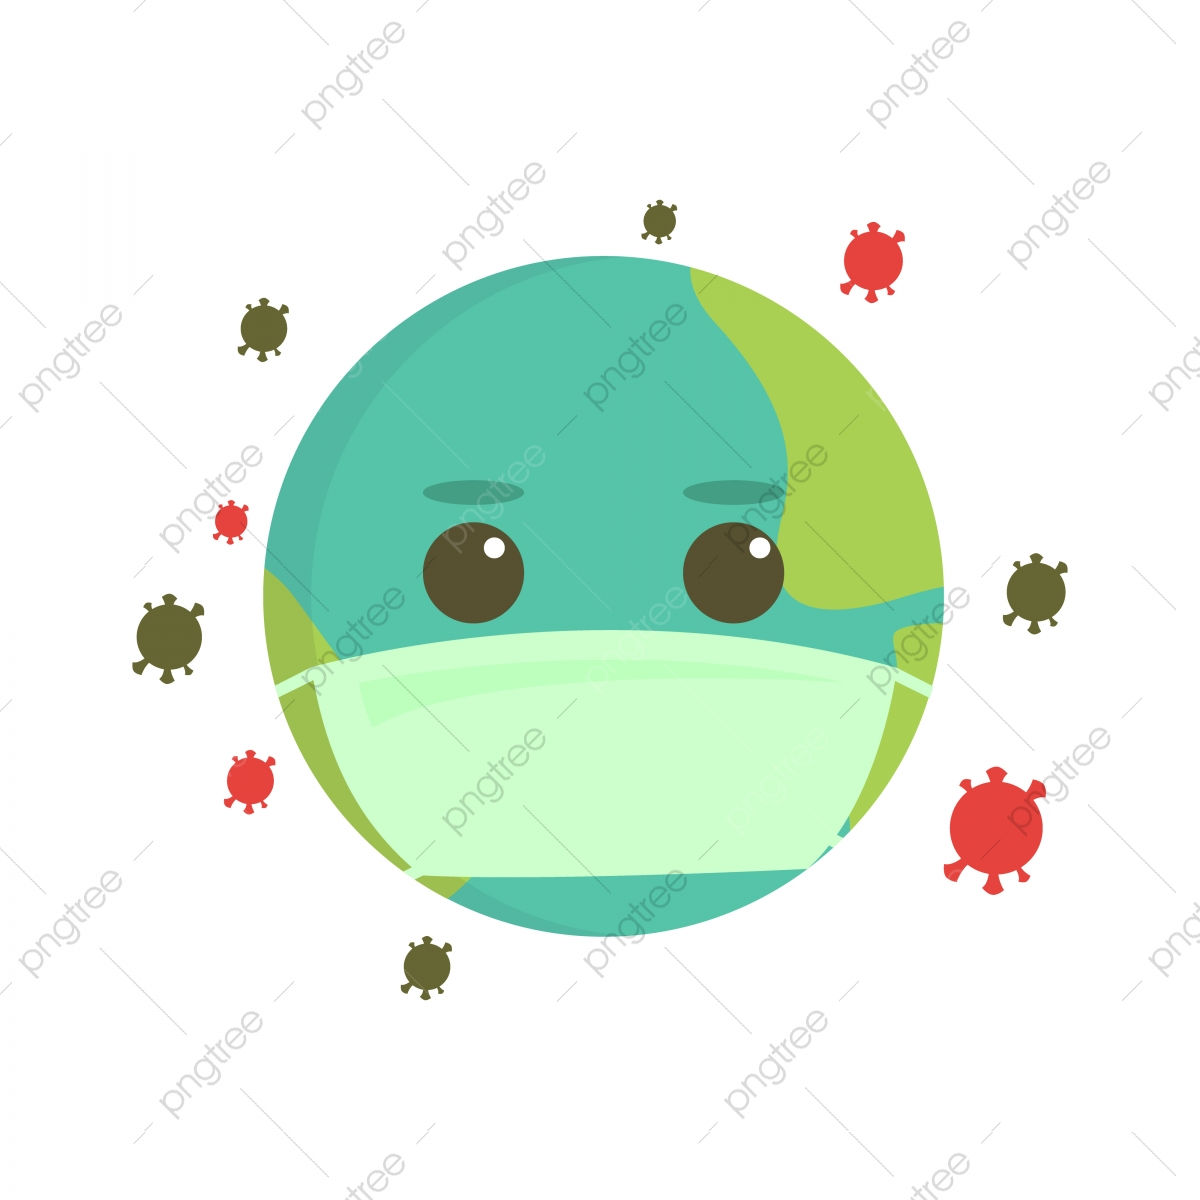 Earth Using Masker From Corona Virus Attack Earth Icons Attack Icons Aid Png And Vector With Transparent Background For Free Download